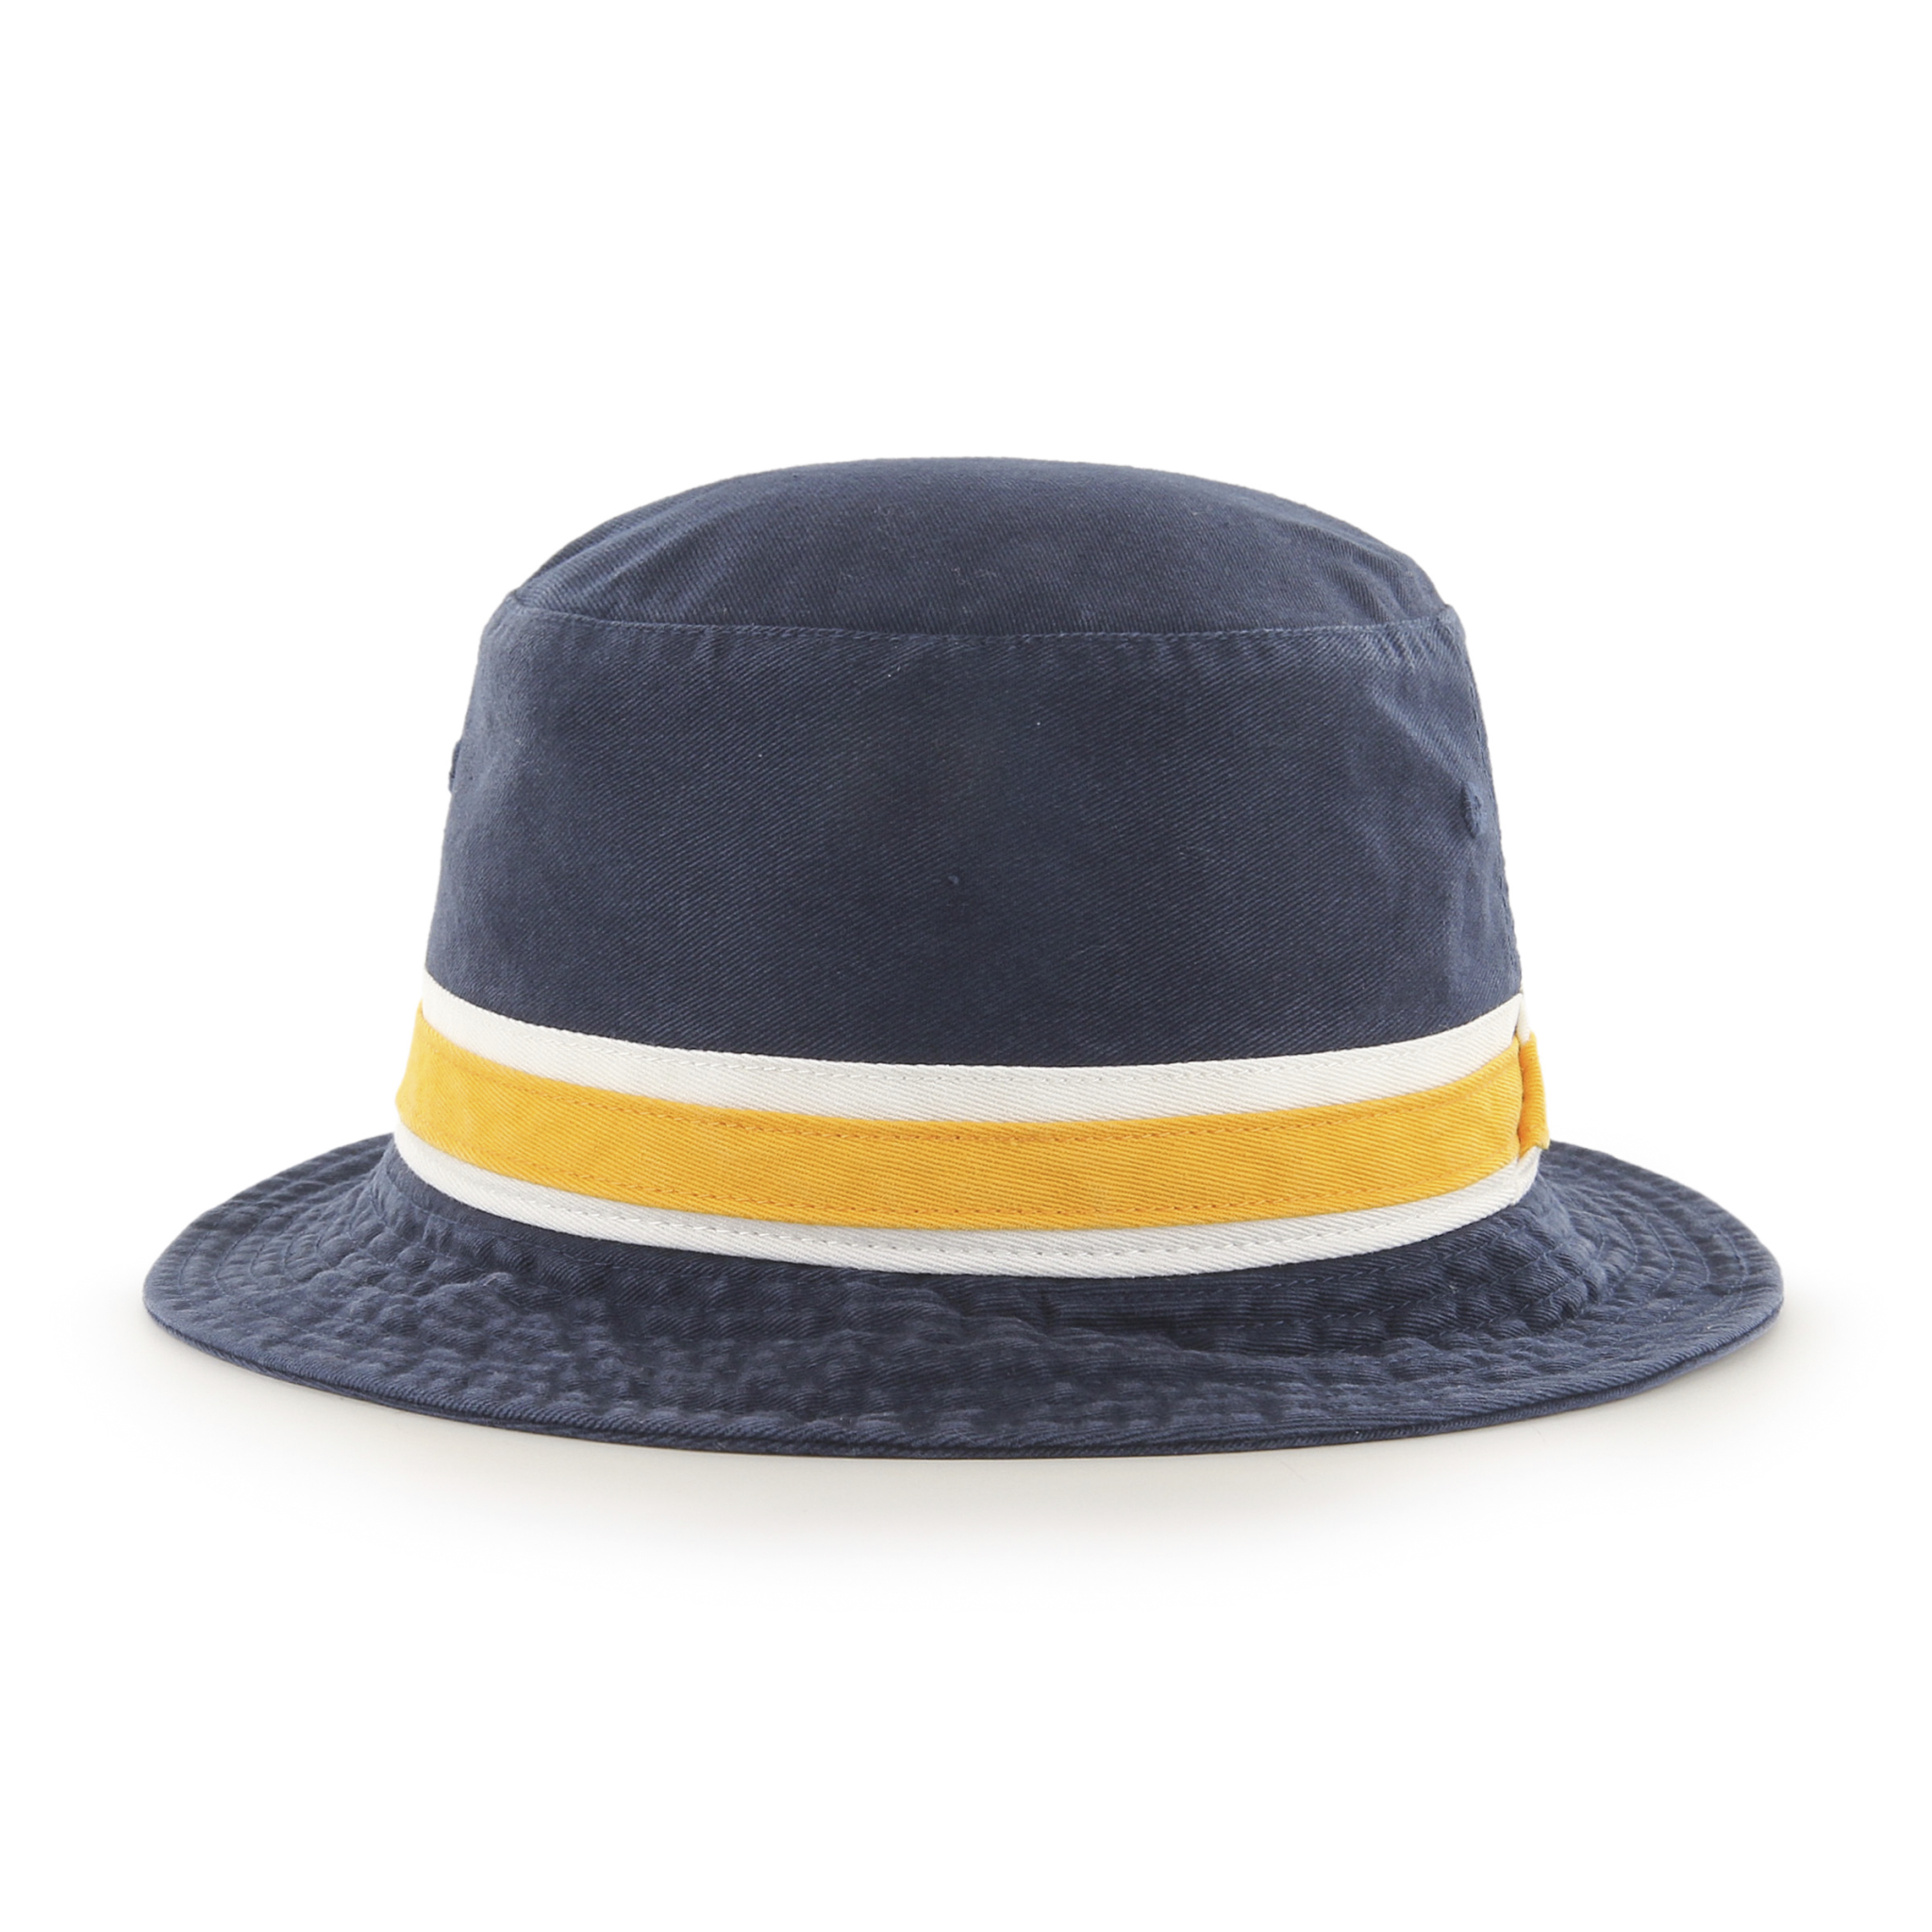 Cal Bears '47 Striped Bucket Hat Cal Logo